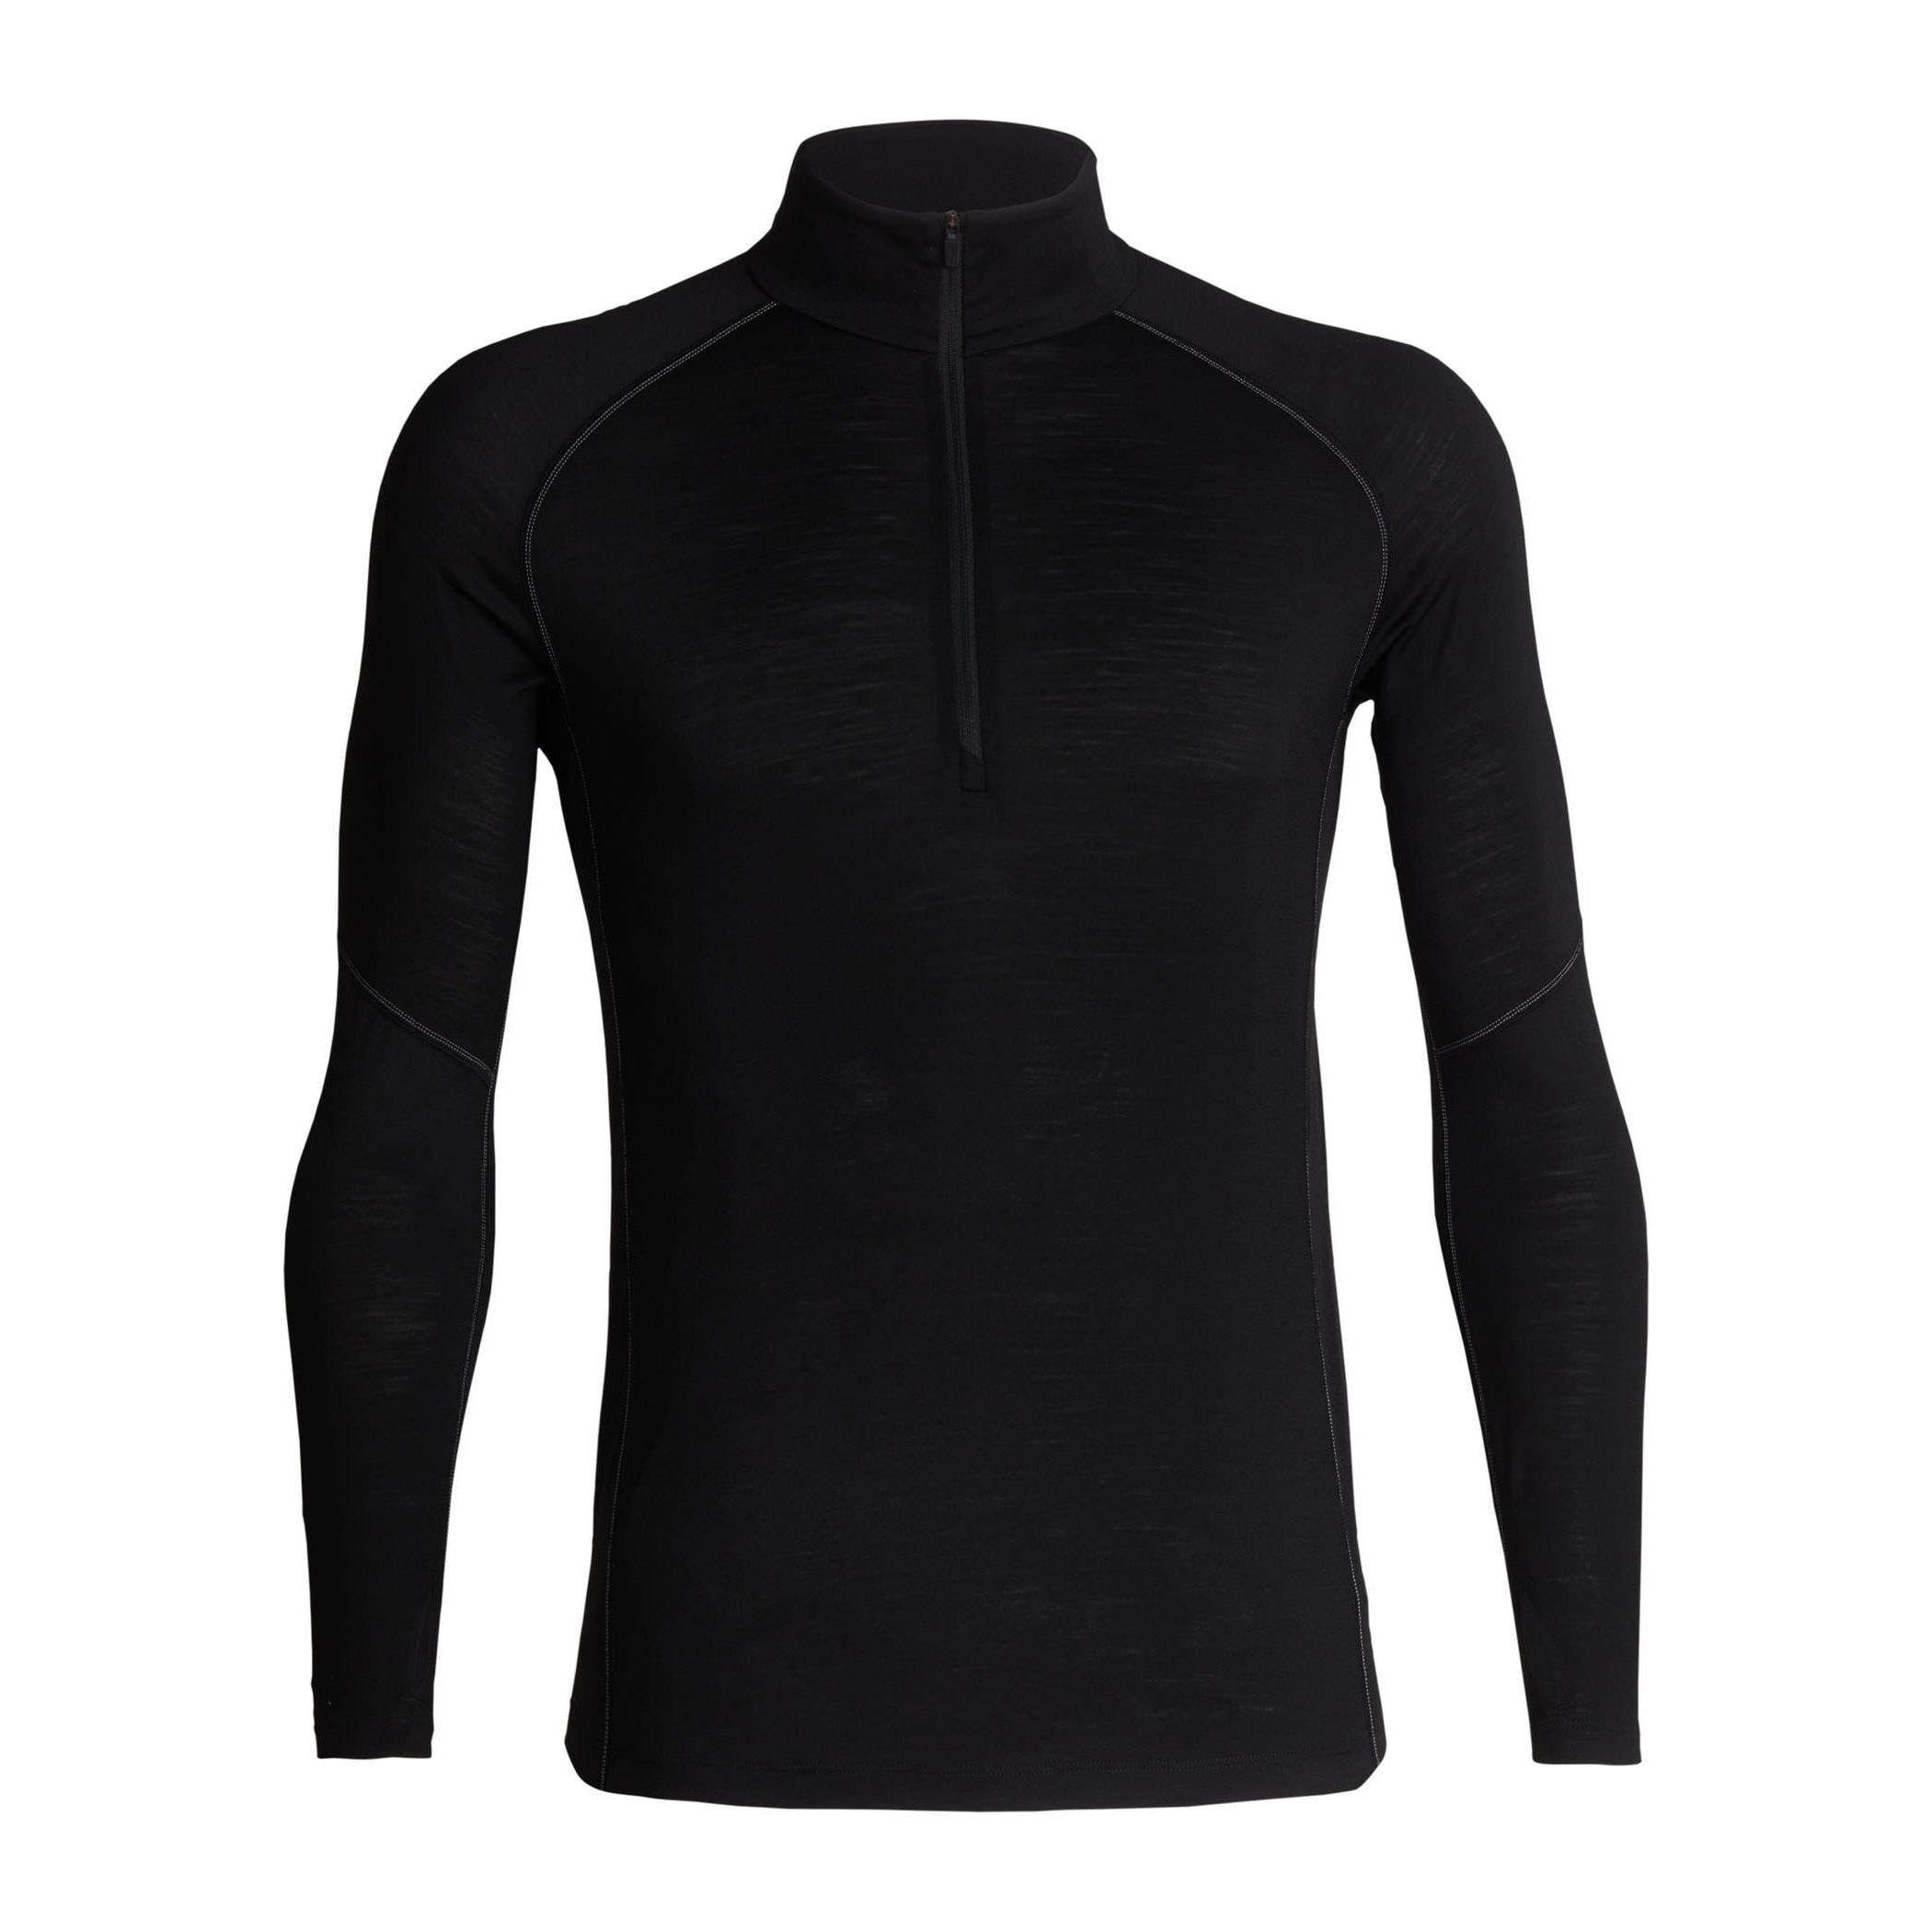 150 Zone Half Zip Long Sleeve - Men's